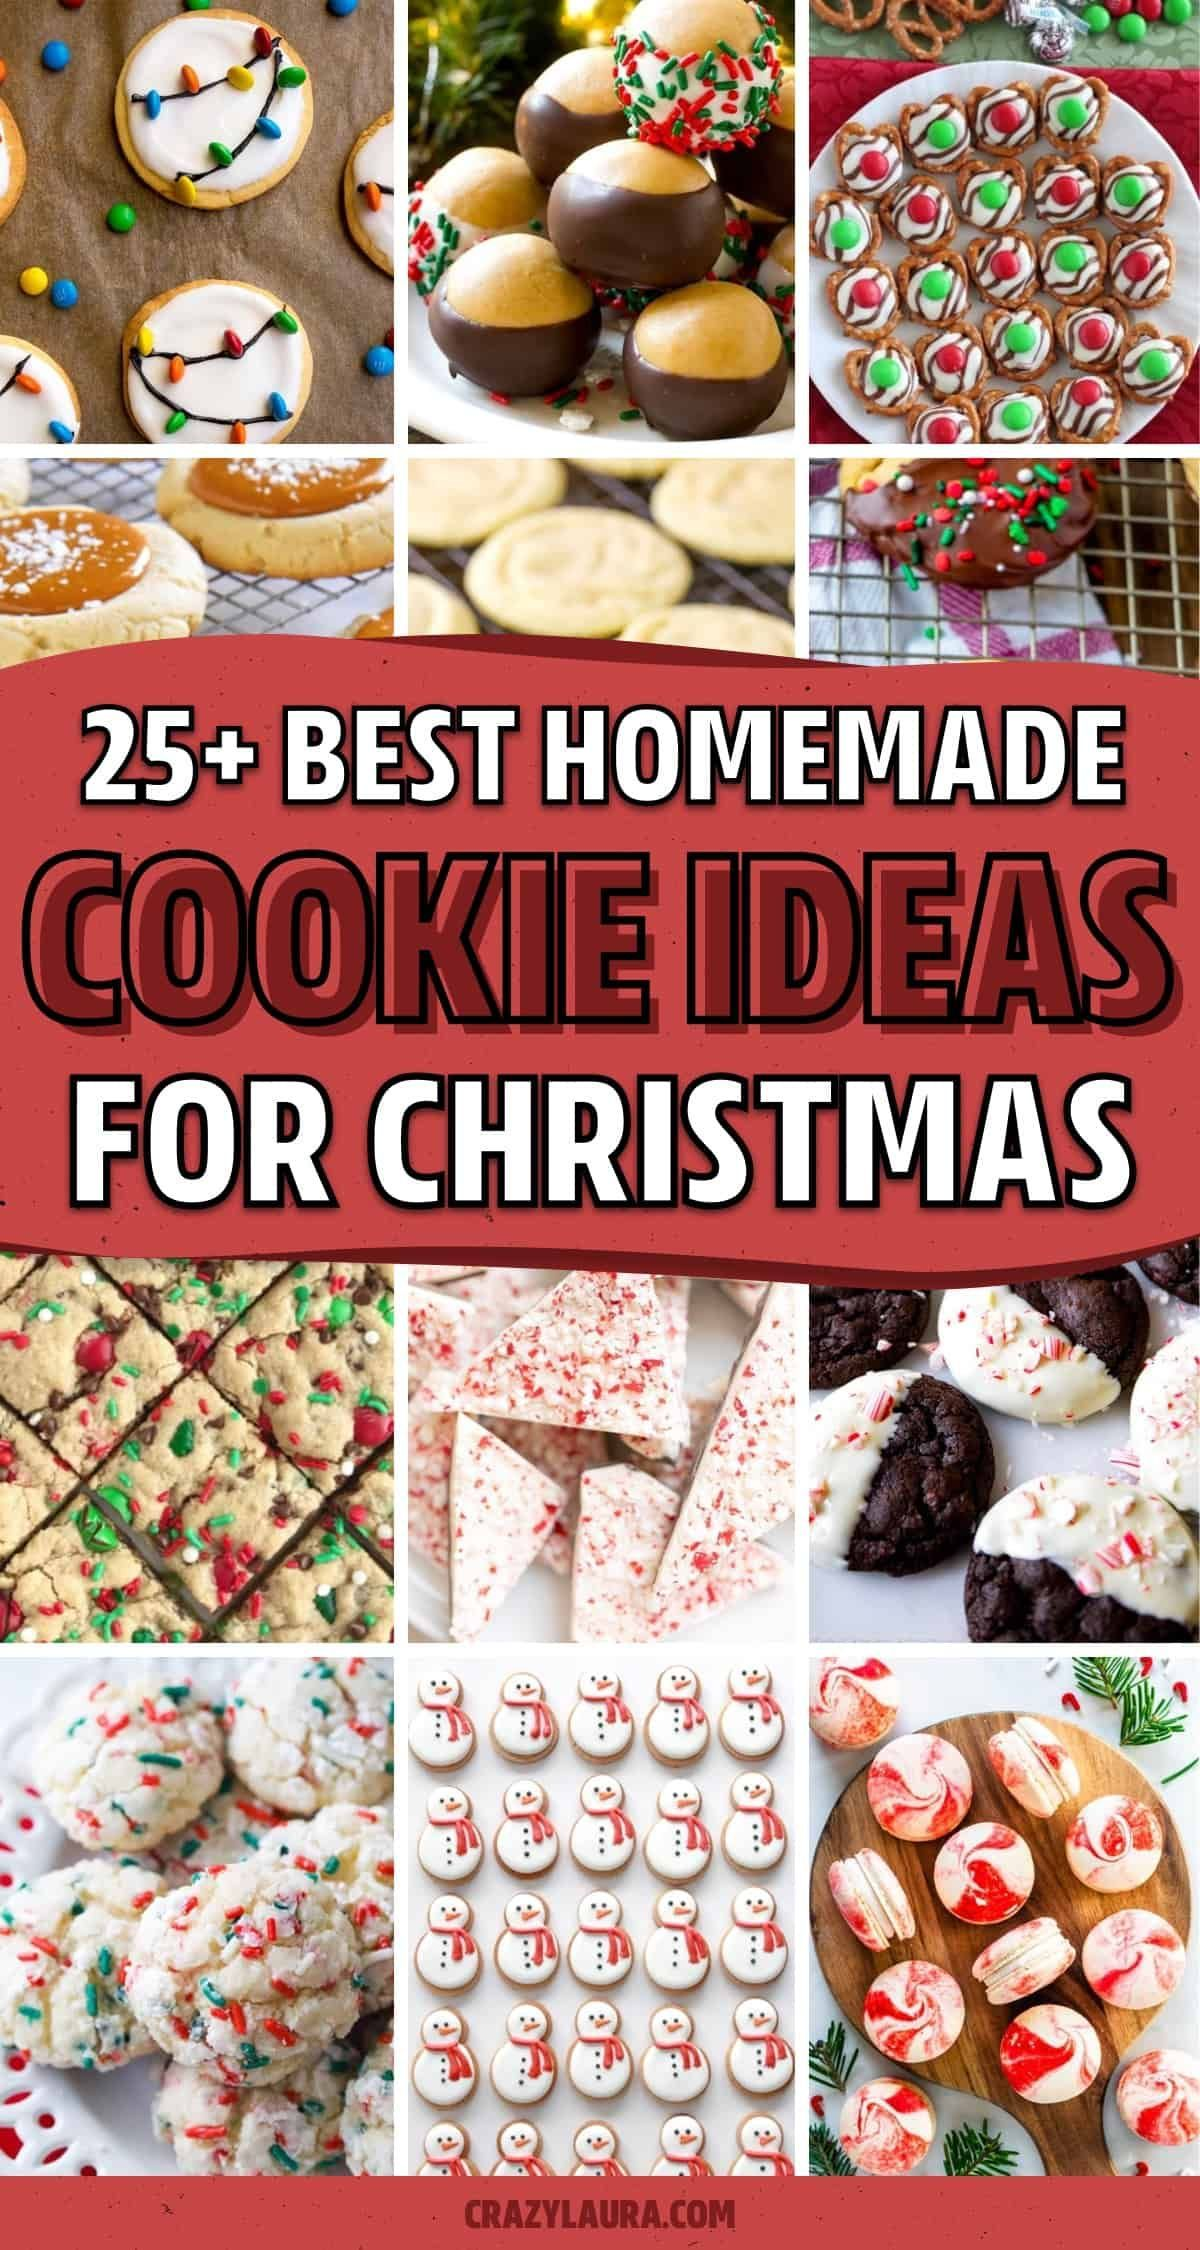 Christmas Cookies Recipes 2021 25 Best Christmas Cookie Recipes For 2021 Crazy Laura Cookies Recipes Christmas Best Christmas Cookie Recipe Cookie Recipes